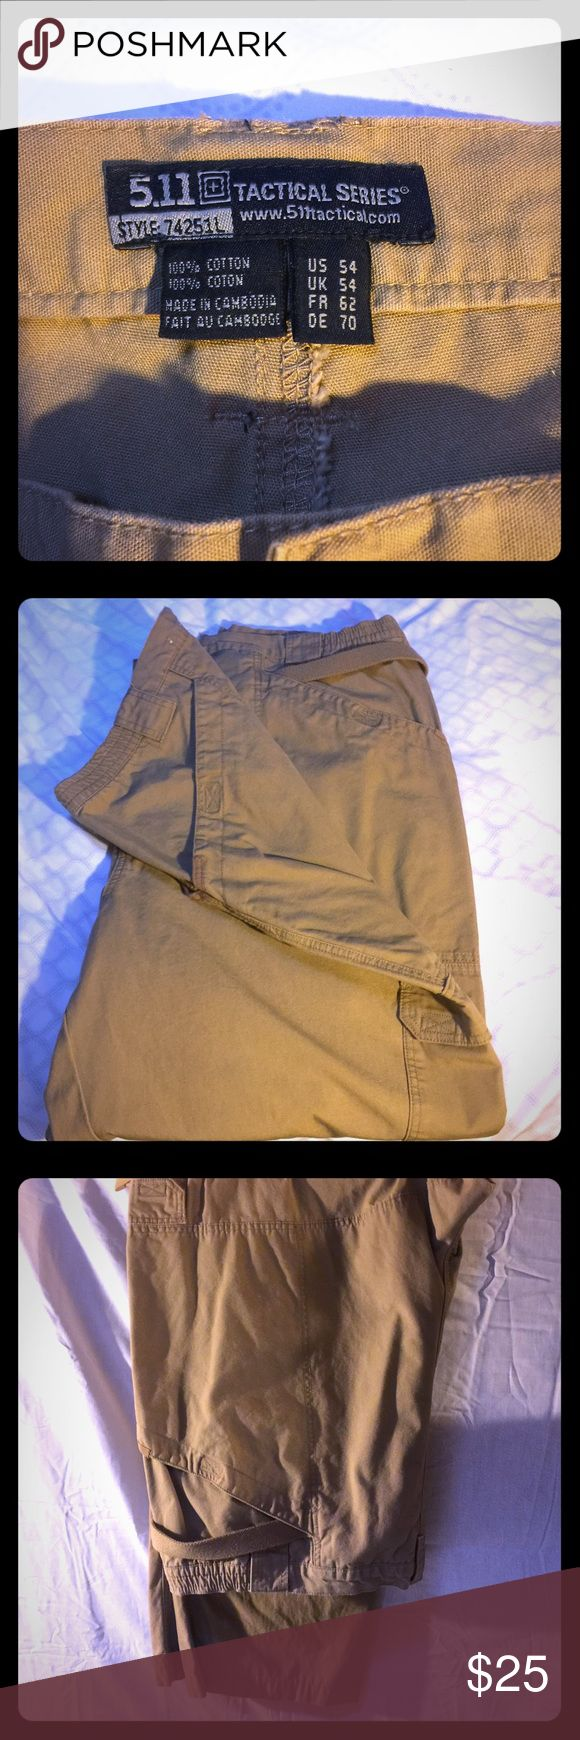 """5.11 Tactical Pants men's size 54x30 5.11 Tactical Pants. EUC no rips stains or tears. Very rarely worn. Smoke free home. Color is """"coyote"""" darker khaki/tan. 🚫No trades. Reasonable offers welcome.                                                              8.5 oz. cotton canvas fabric Action waistband Double- reinforced seat and knees (kneepad ready) Bartacking at major seams and stress points Seven pockets, including strap- and- slash pockets Hip- mounted D- ring YKK® zippers Prym® snaps…"""